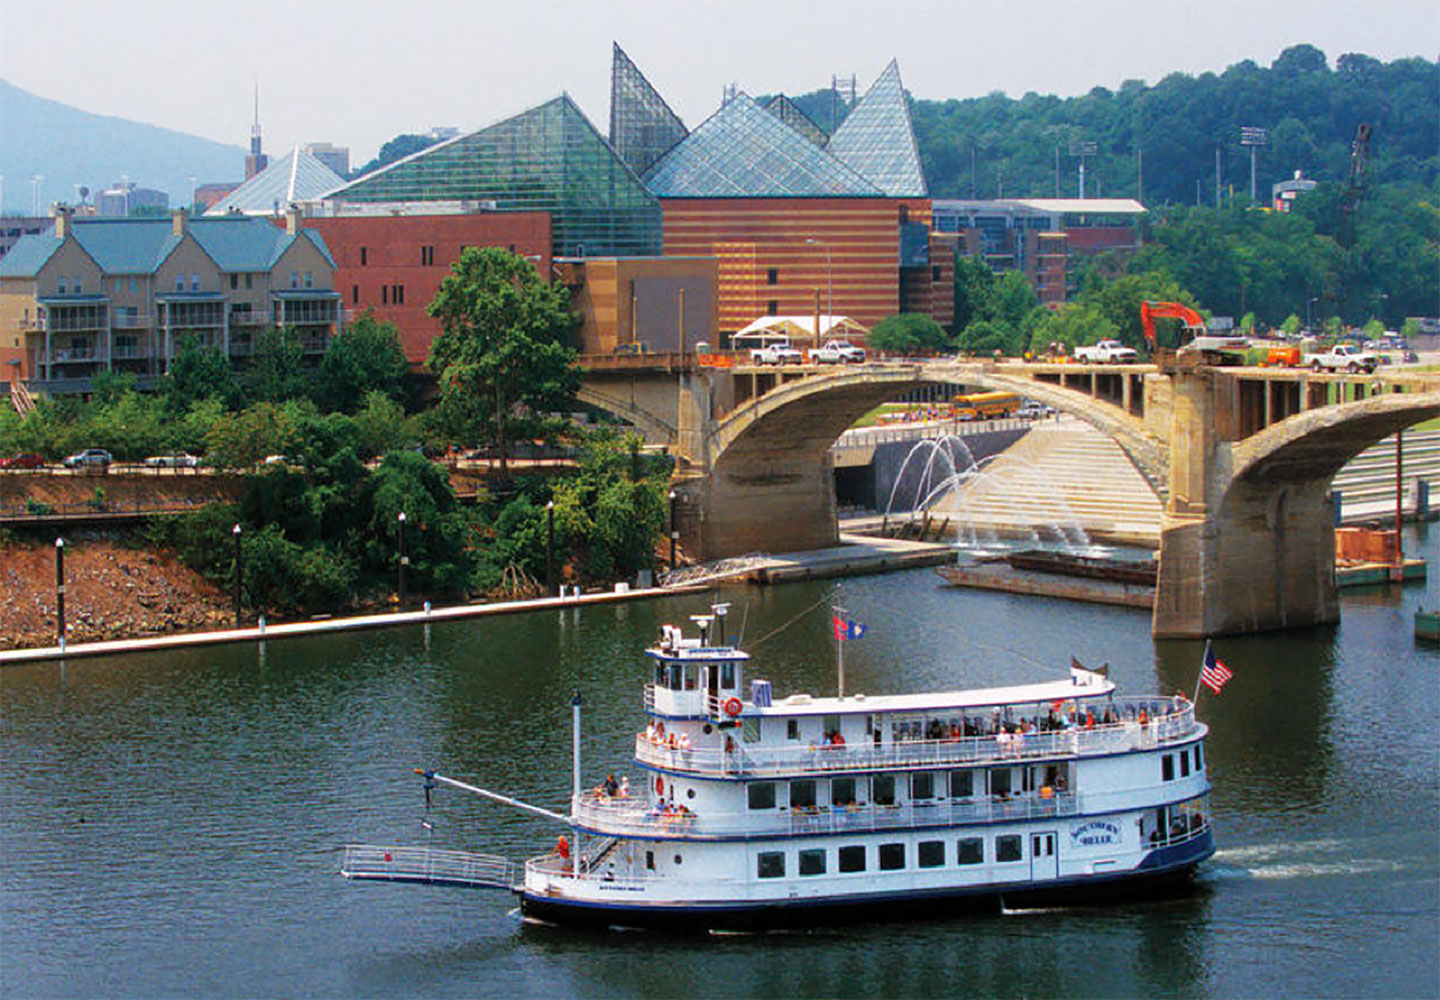 Spend an Artsy Weekend in Chattanooga, Tennessee